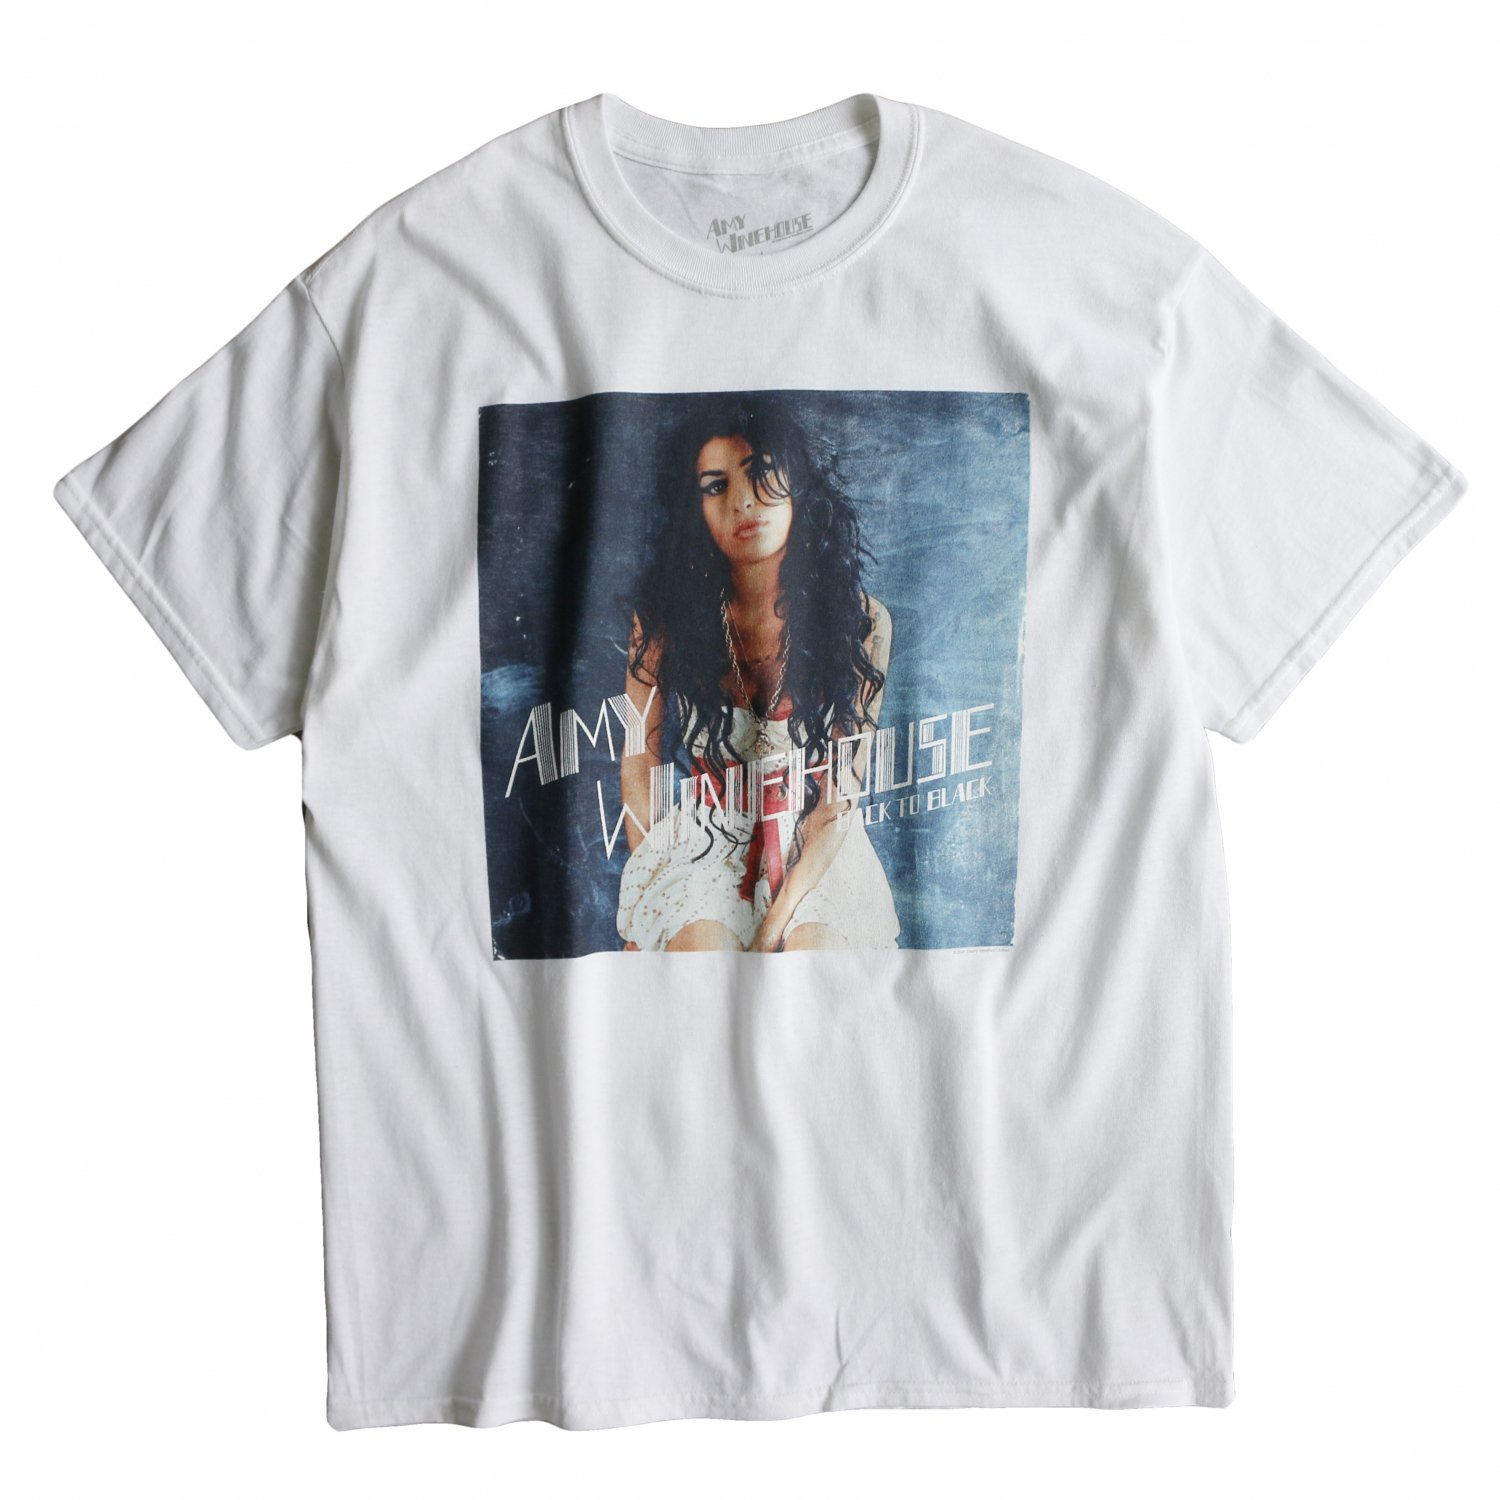 """<img class='new_mark_img1' src='https://img.shop-pro.jp/img/new/icons8.gif' style='border:none;display:inline;margin:0px;padding:0px;width:auto;' />Music Tee / S/S TEE AMY WINEHOUSE""""AMY"""""""